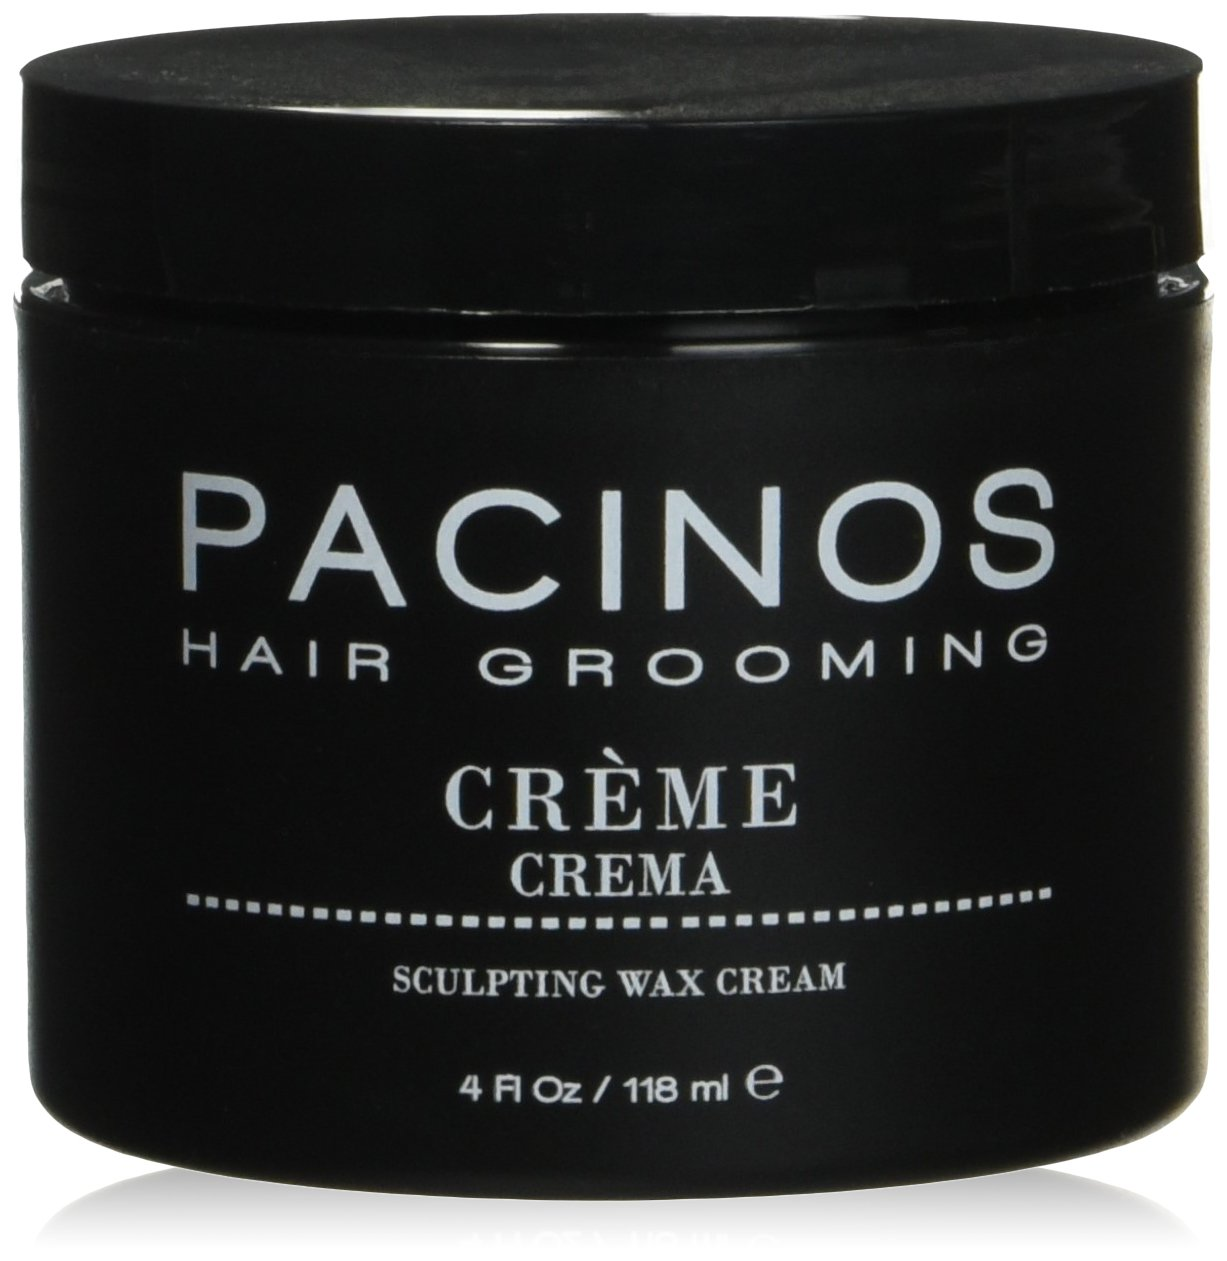 Pacinos Hair Groming Creme 4 Ounce 118 Ml Beauty Pomade Gatsby Urban Dry 30 Gr Styling Gel